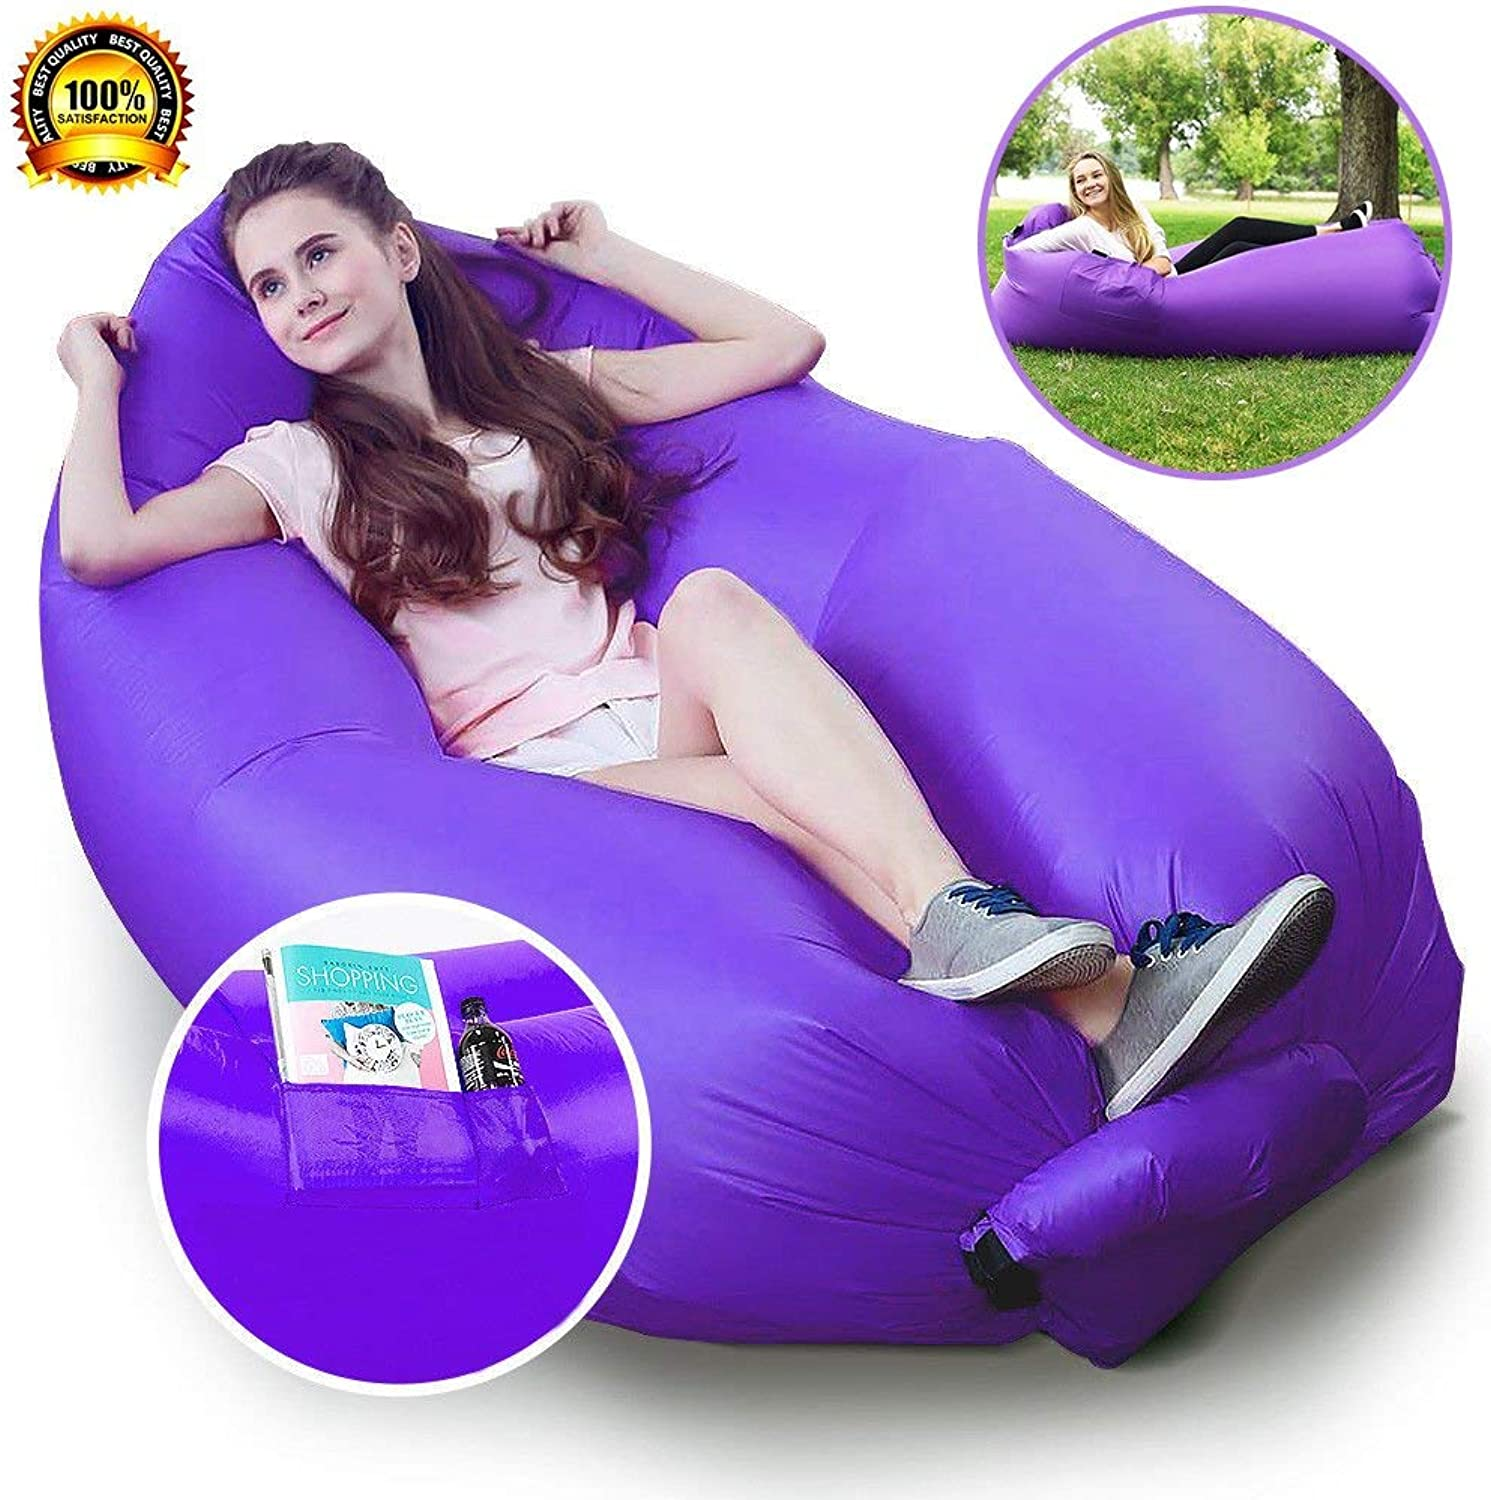 SYF Inflatable Hammock Lounger Air Sofa Hangout Couch Lounger Bag with Carrying Bag Waterproof Nylon Air Chair for Indoor Outdoor Camping Picnics A+ (color   Purple)